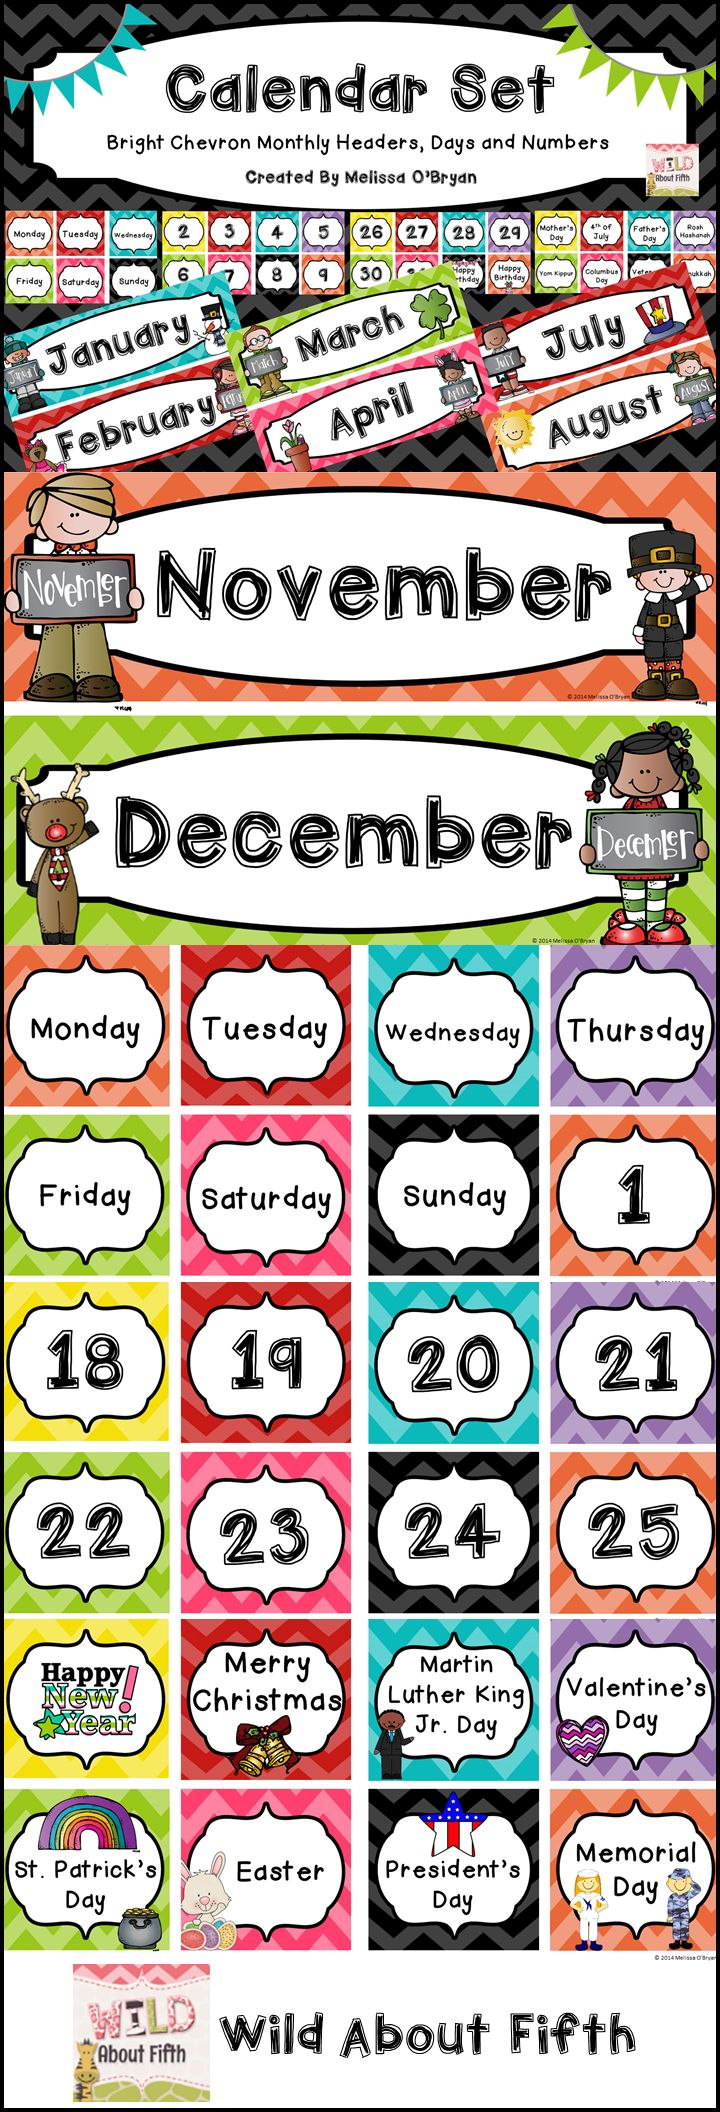 FREE - Brand new year - Brand new calendar set!! Brighten up your classroom with this chevron décor calendar set - will last for years. Lose or rip a piece? Just reprint. Need more holidays? Just reprint. Matches perfectly with all of the items in my classroom décor line. #wildaboutfifthgrade